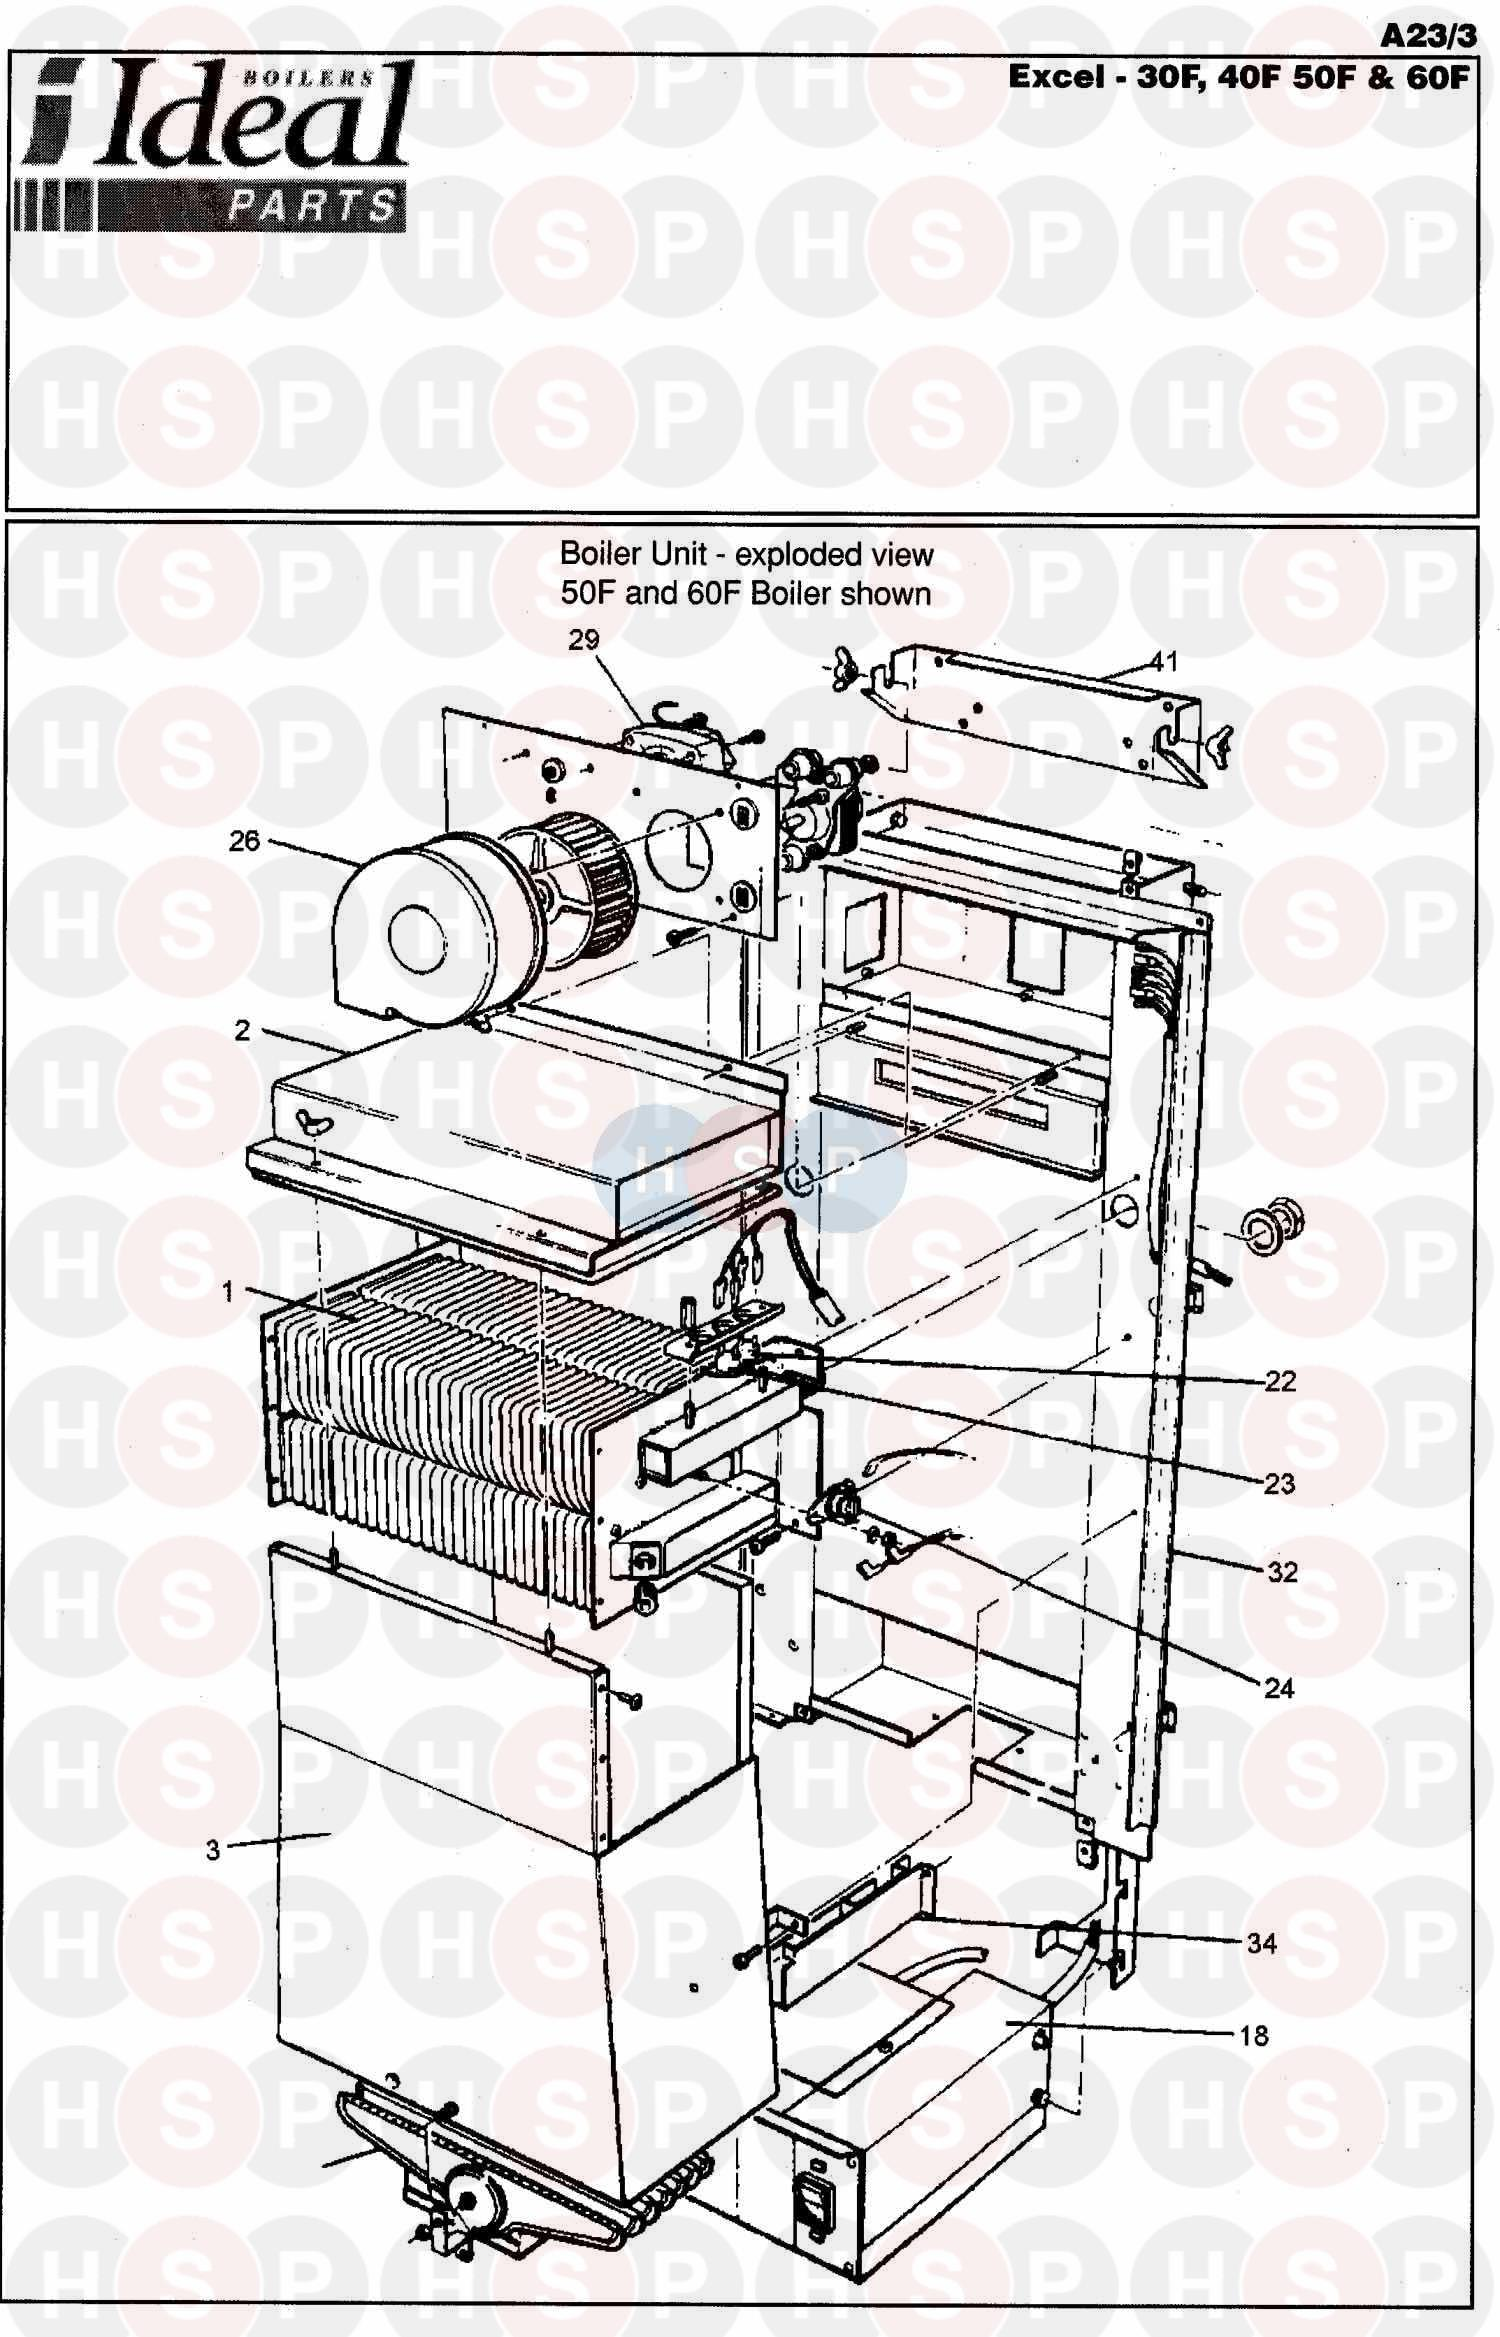 Ideal EXCEL 60F Appliance Diagram (BOILER ASSEMBLY 1